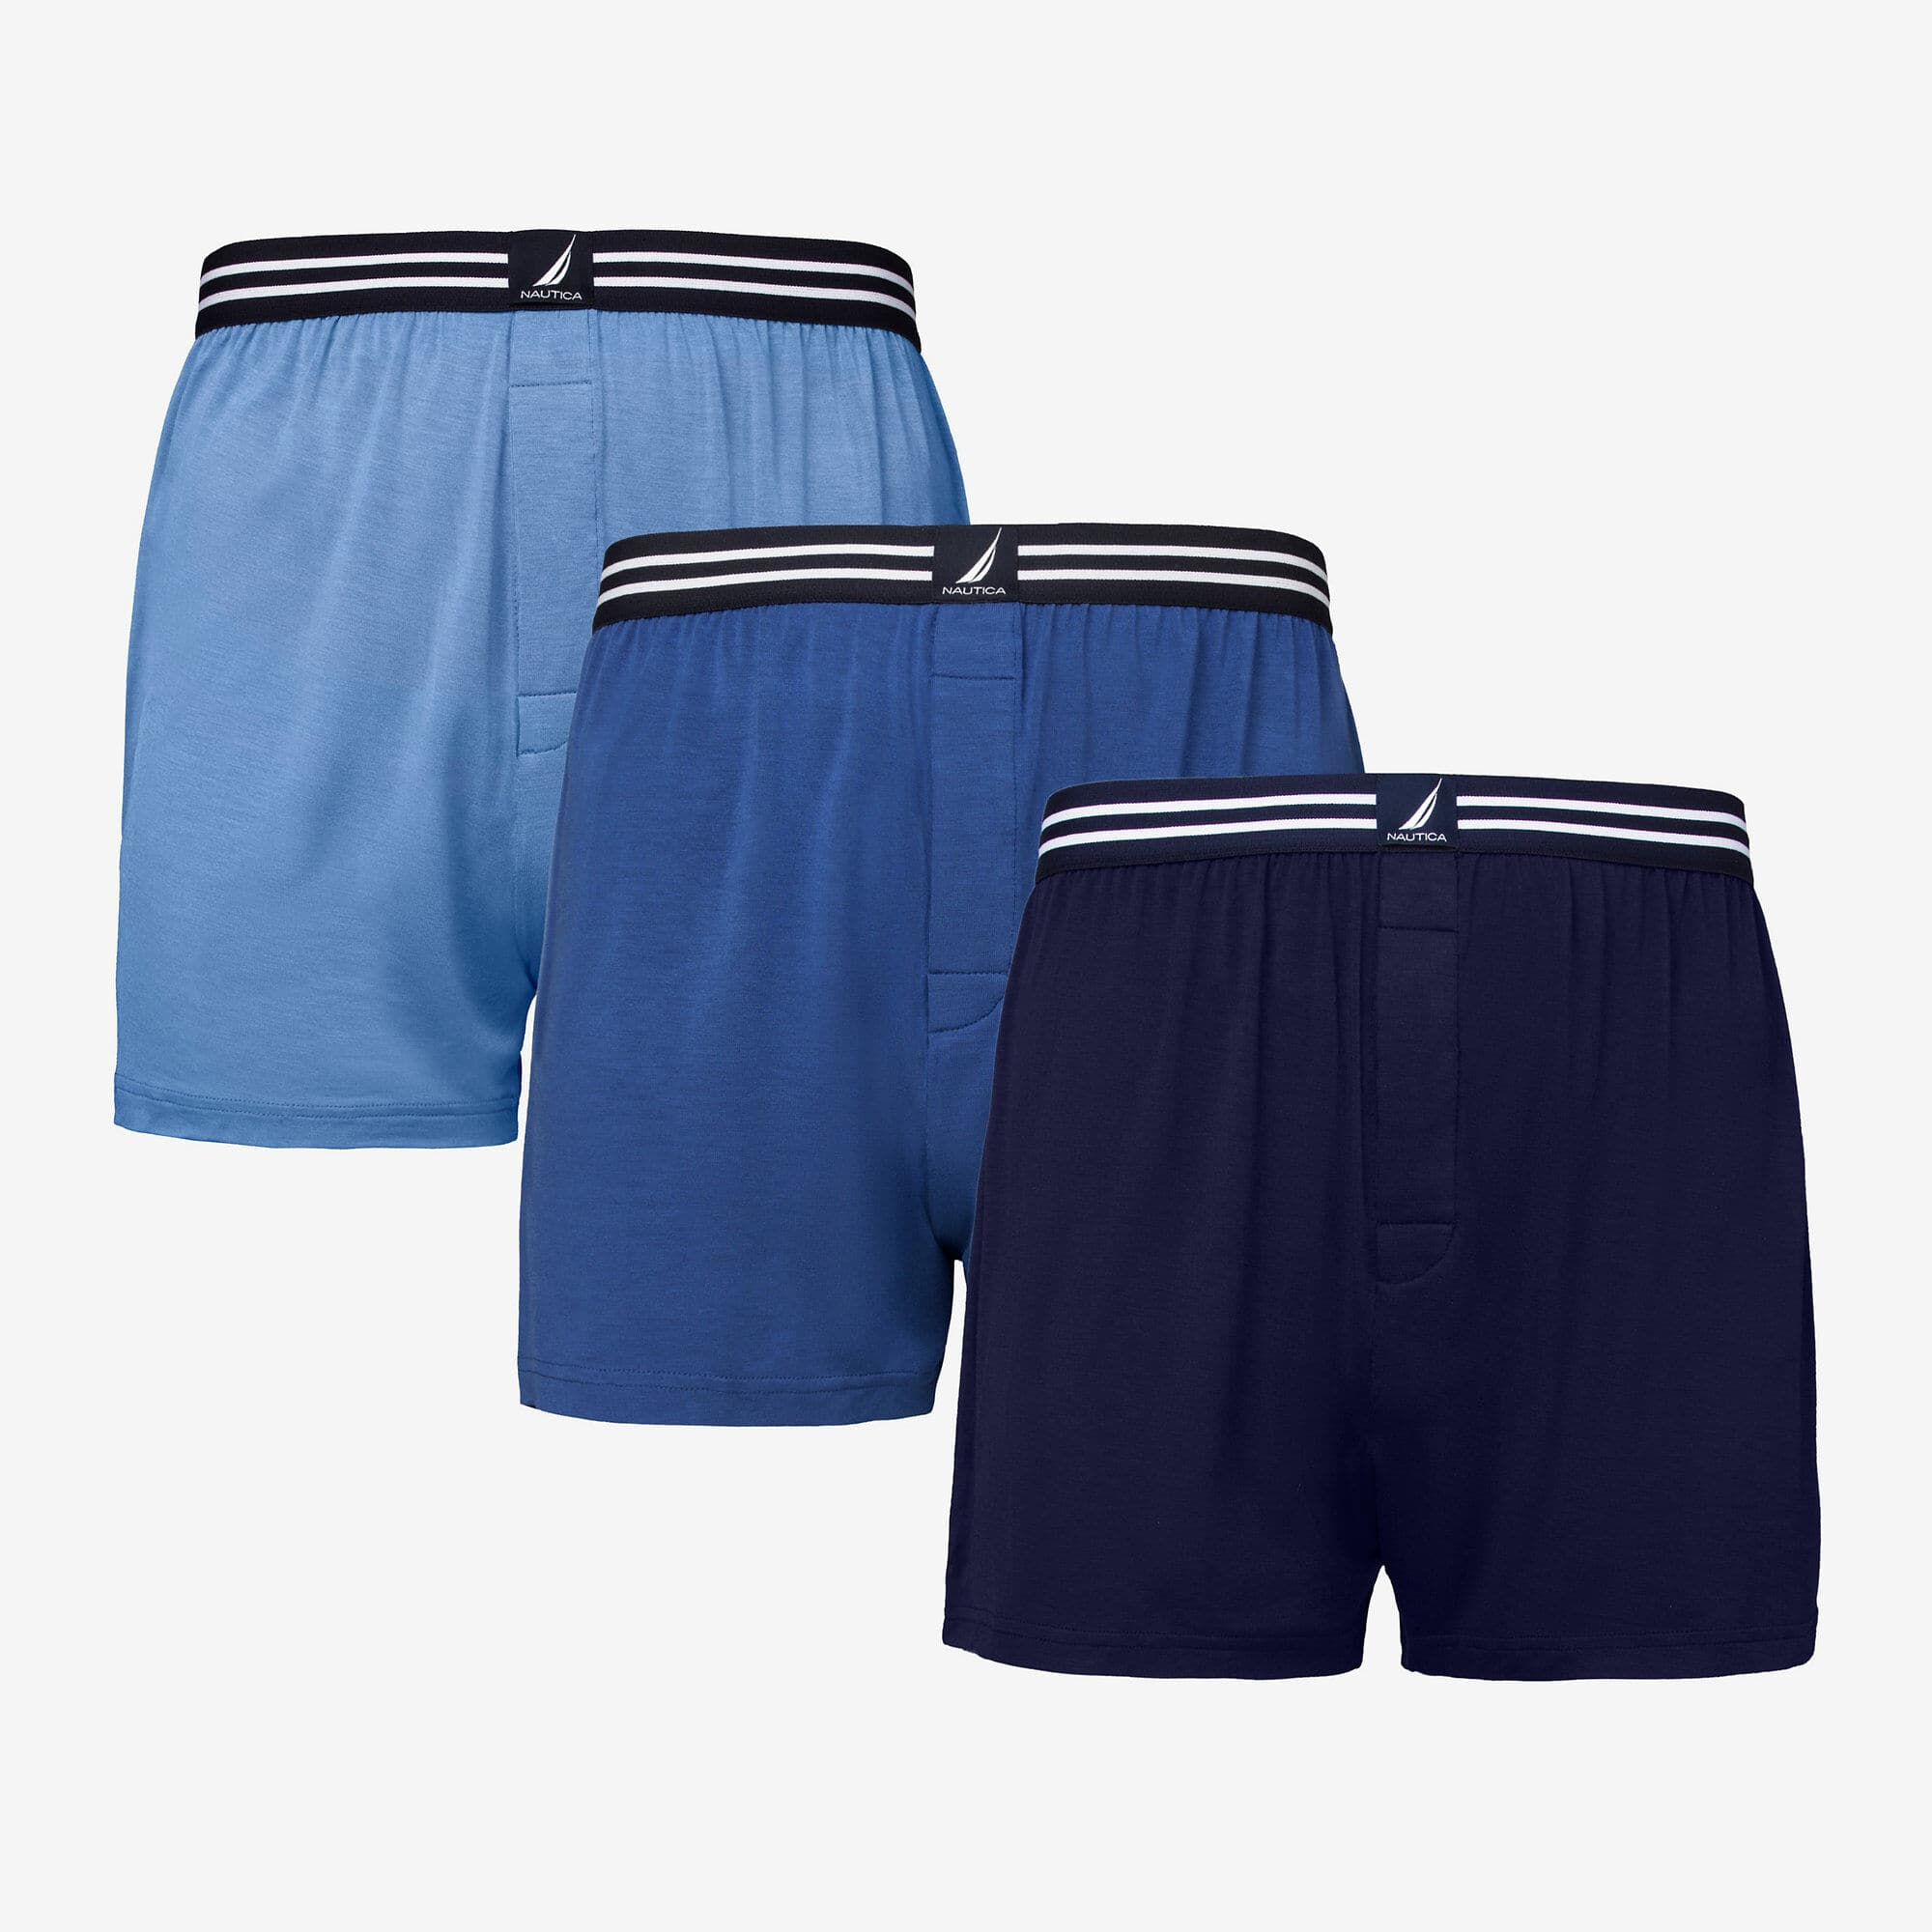 Nautica Modal Knit Boxers, 3-pack, $10.00 @ Costco - in-store. YMMV